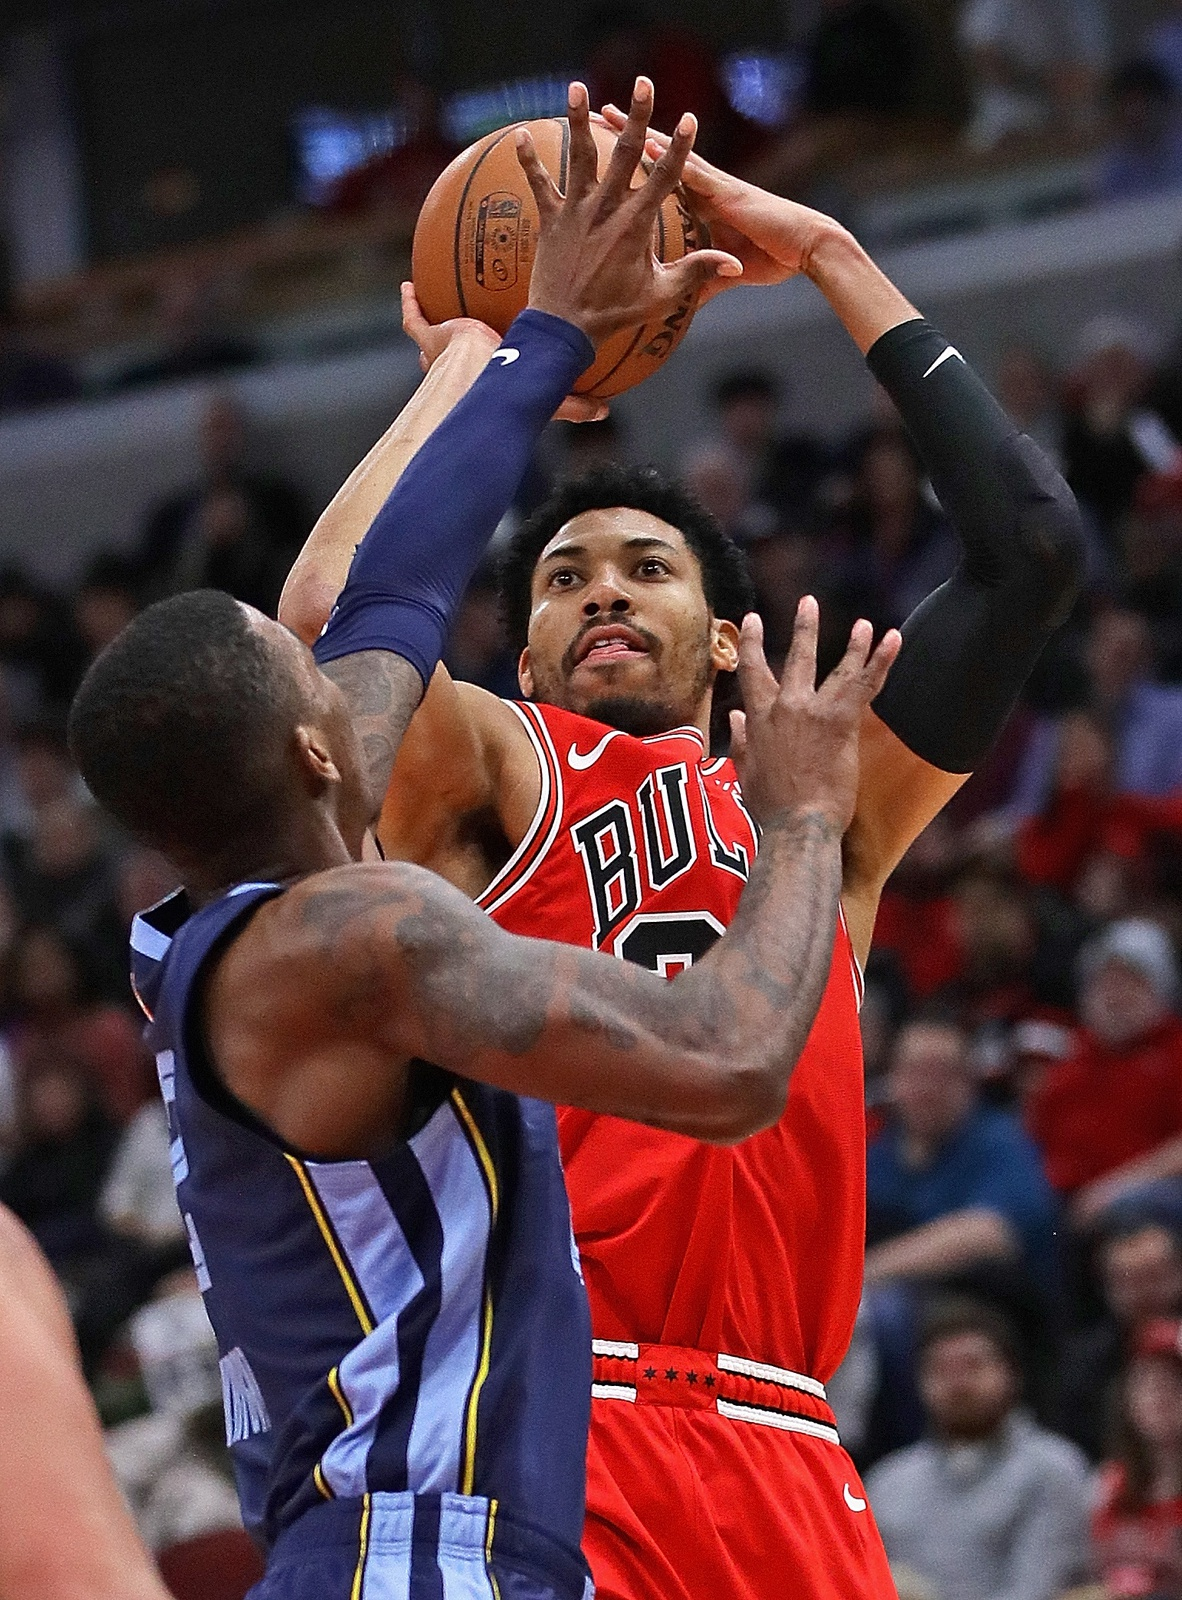 Otto Porter Jr. #22 of the Chicago Bulls puts up a shot over Delon Wright #2 of the Memphis Grizzlies on his way to a game-high 37 points at the United Center on February 13, 2019 in Chicago, Illinois. The Bulls defeated the Grizzlies 122-110